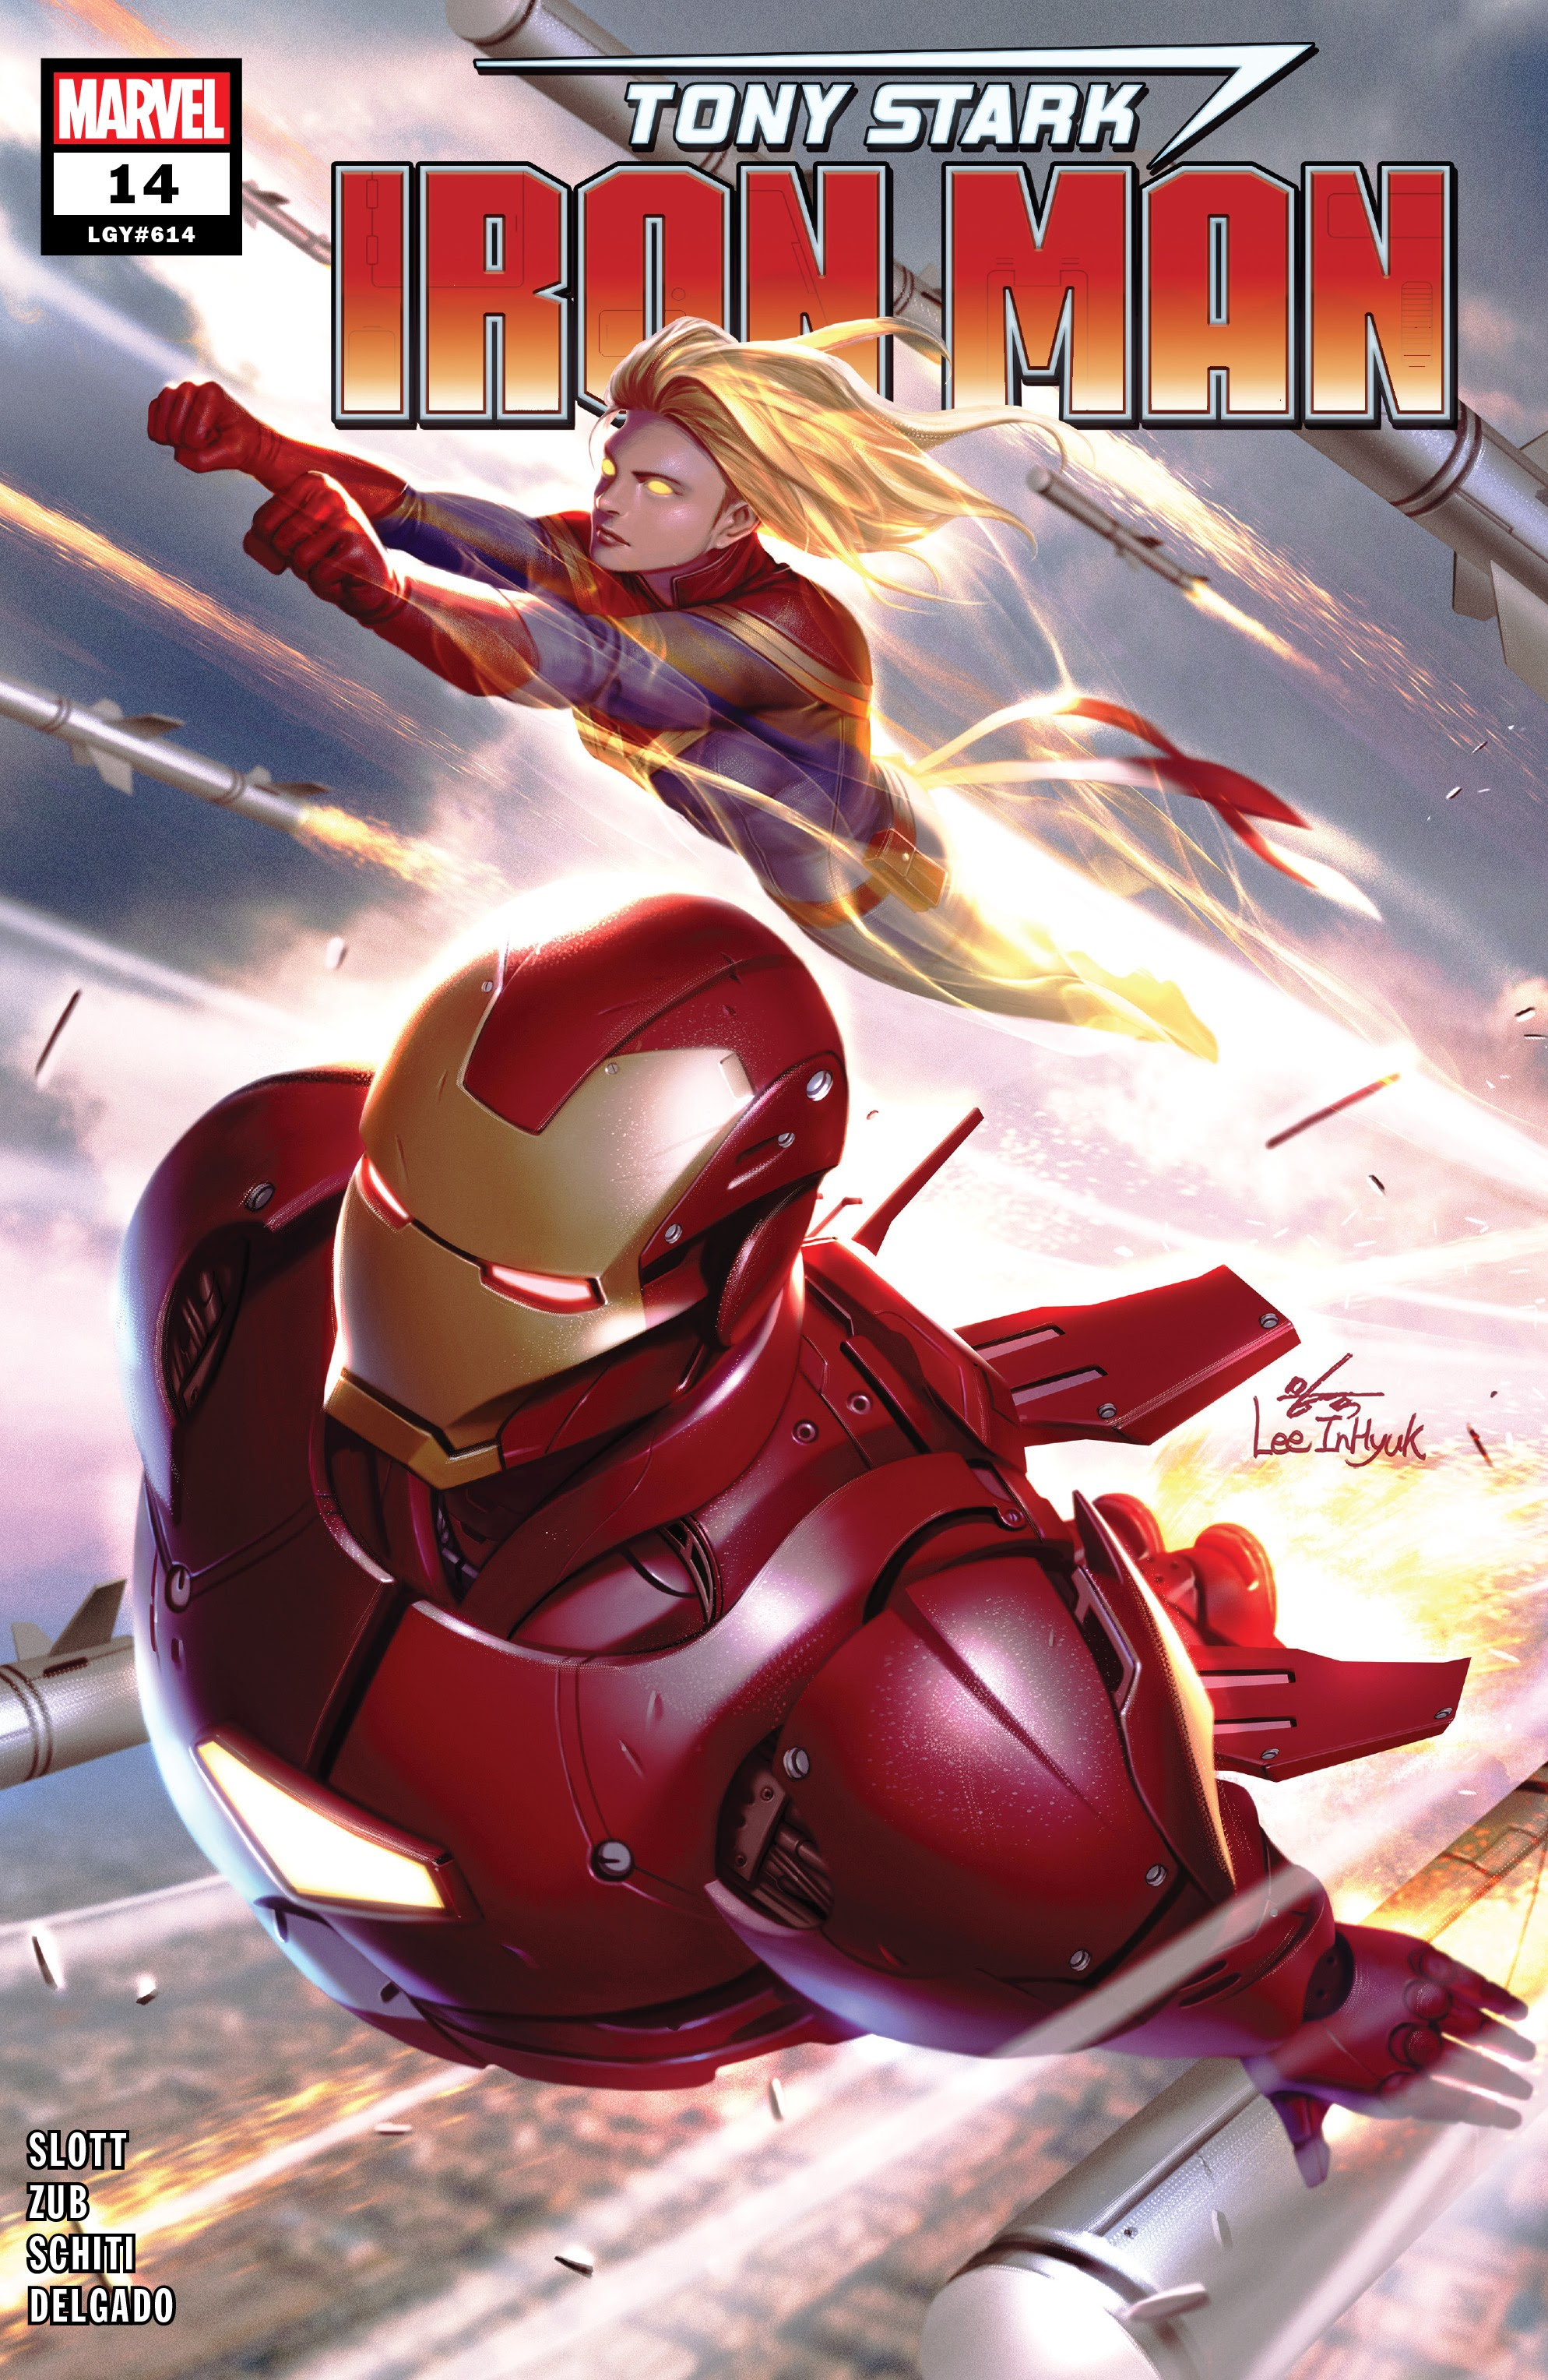 Read online Tony Stark: Iron Man comic -  Issue #14 - 1